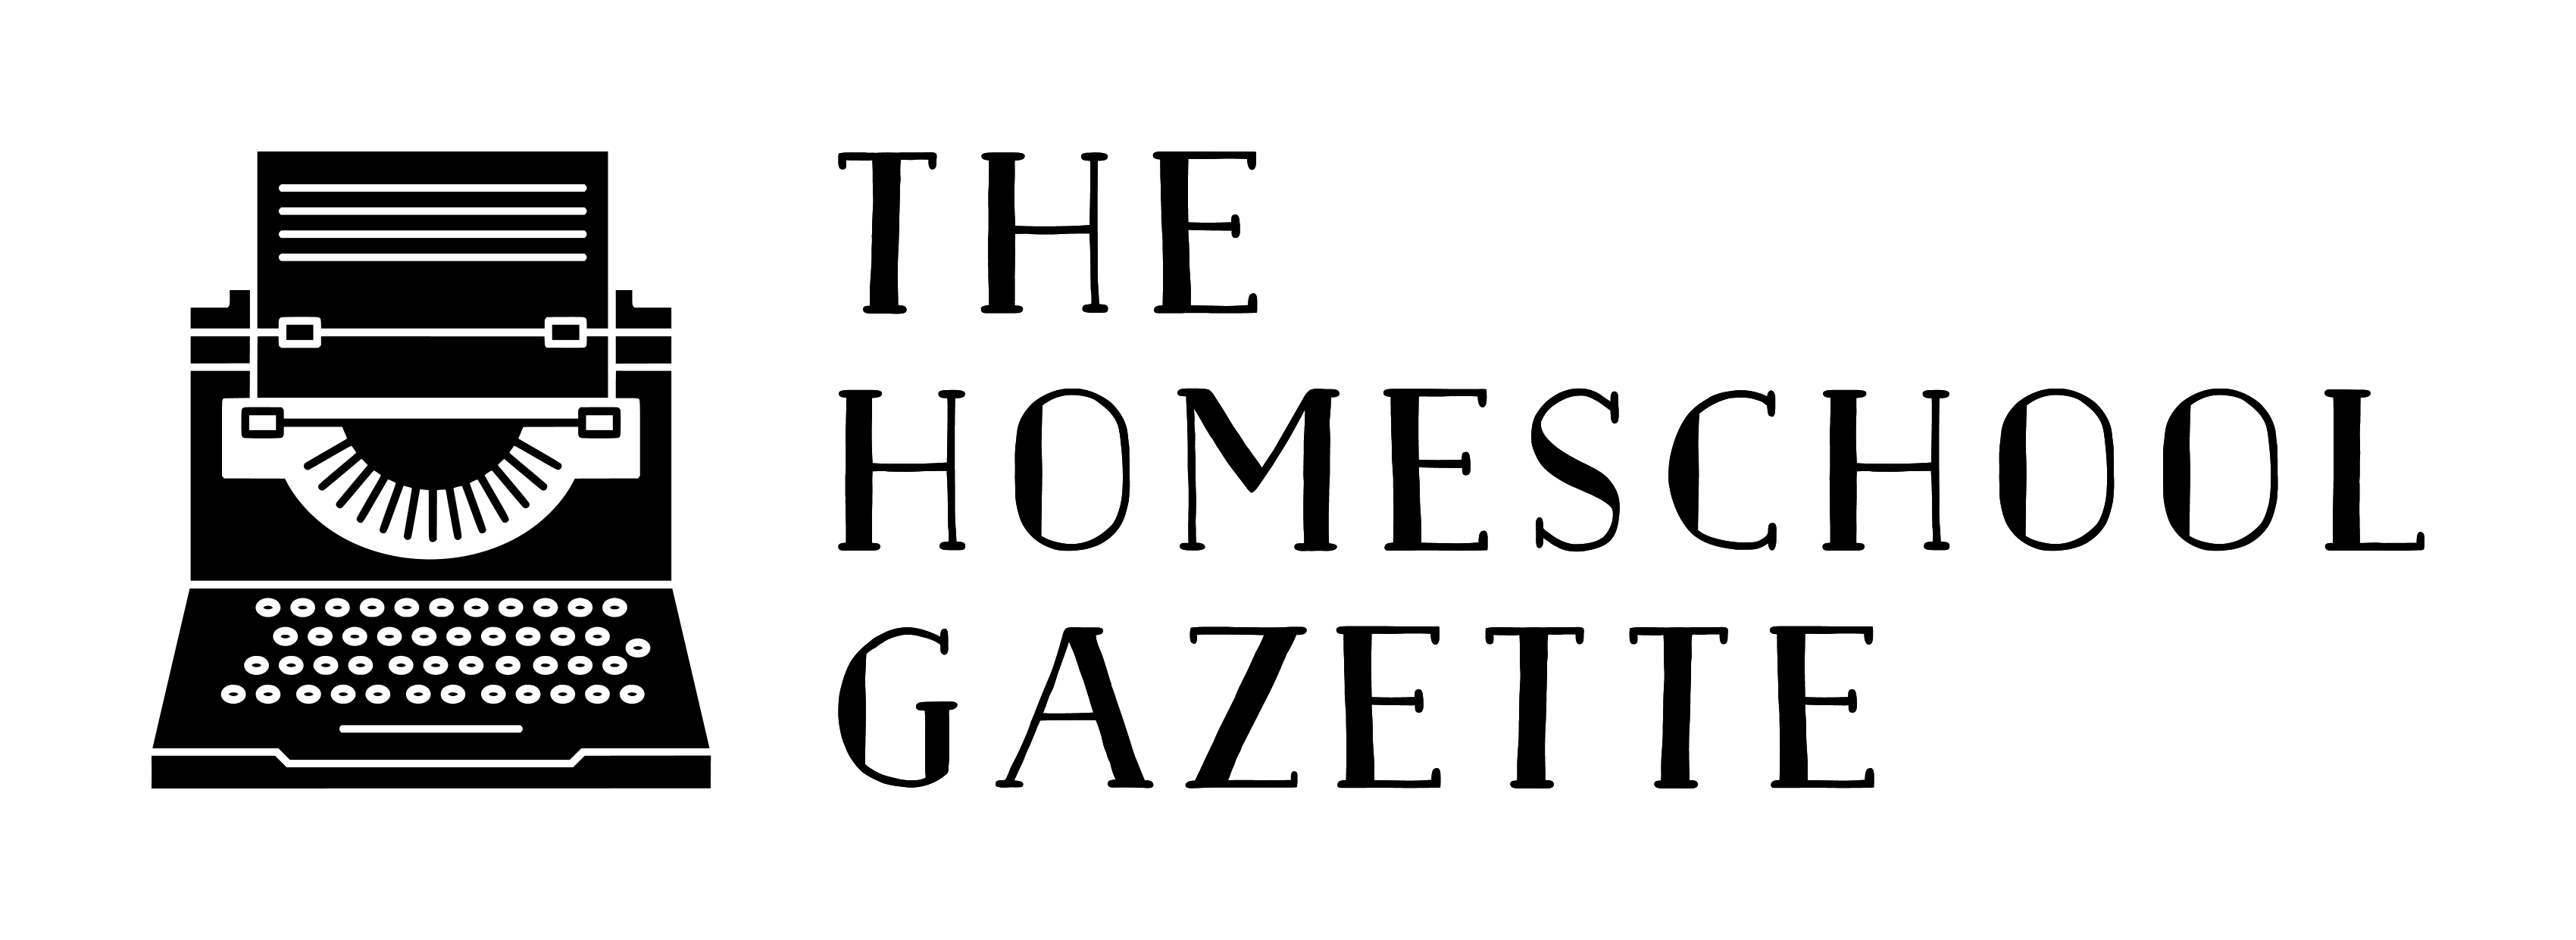 logo_transparent_background